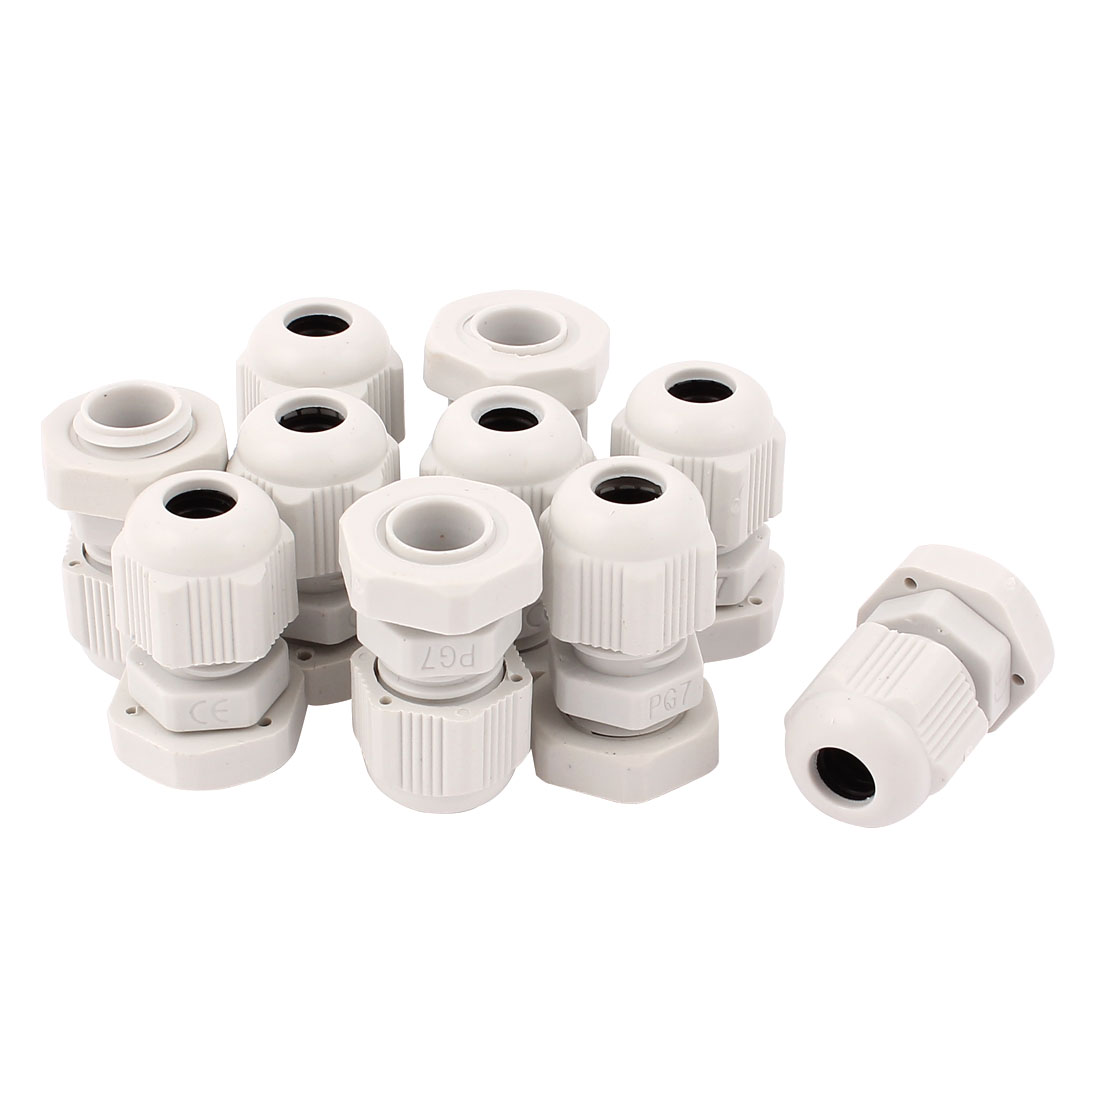 10 Pcs PG7 Waterproof Adjustable Cables Gland Connector White for 6-8mm Dia Wire